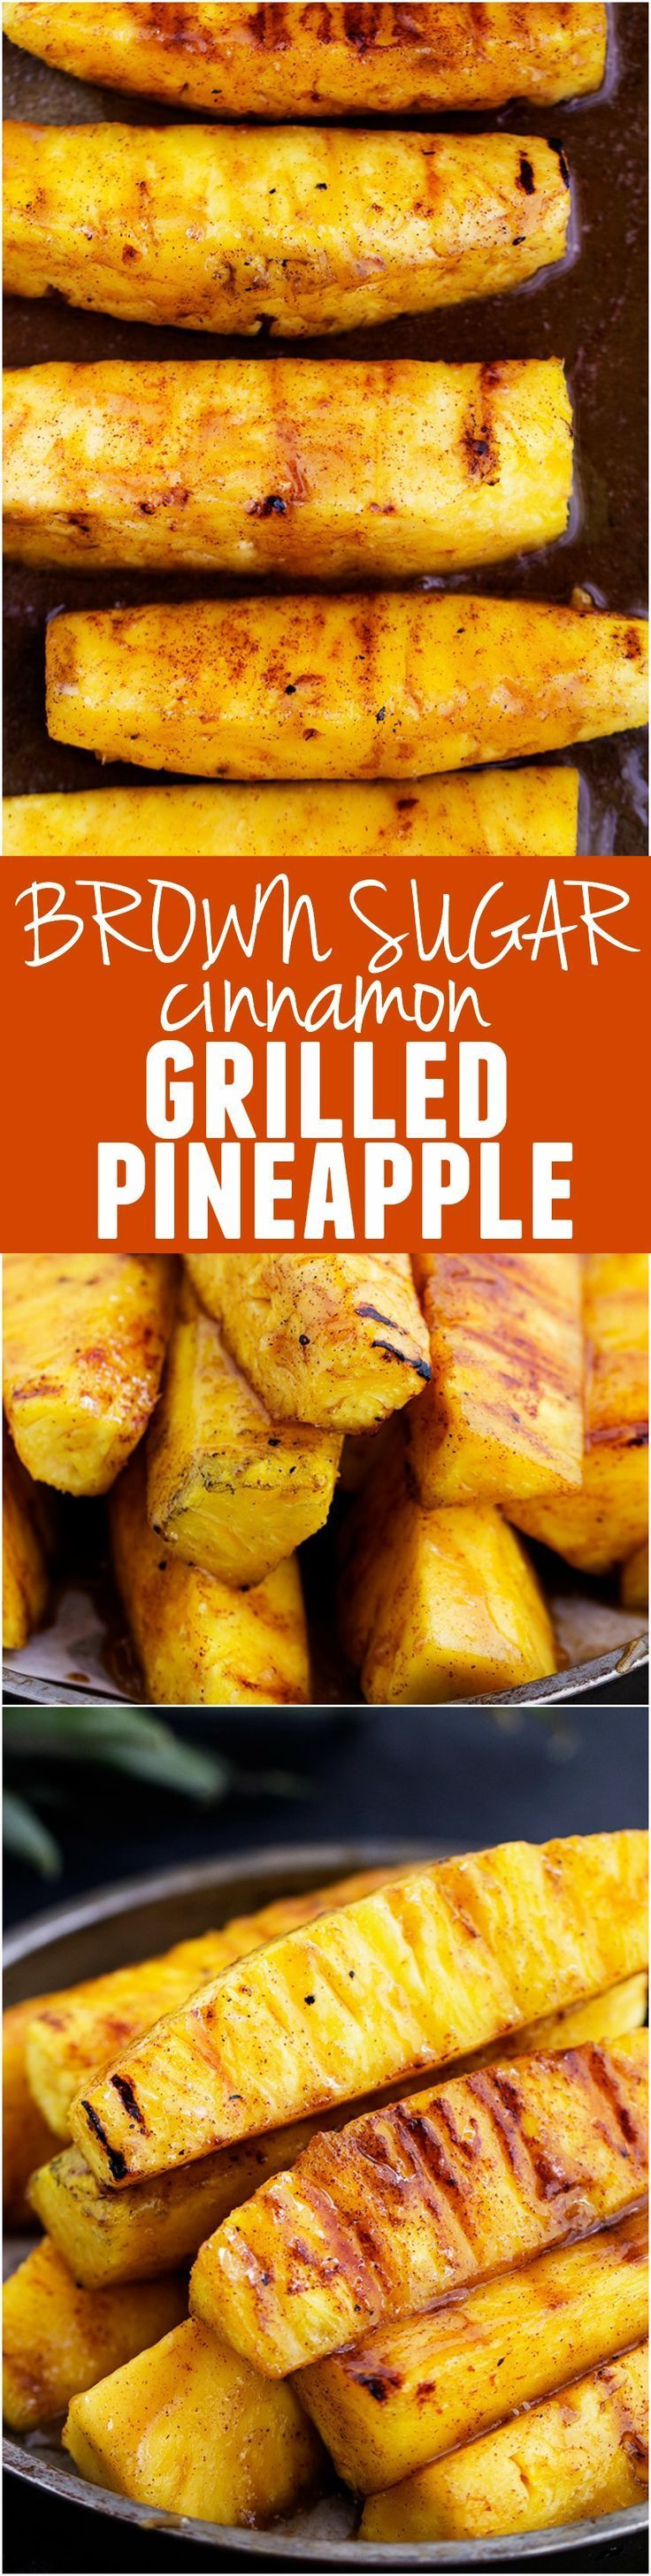 This Brown Sugar Cinnamon Grilled Pineapple will be the BEST side that you will ever grill! It caramelizes on top of this juicy pineapple and will blow your mind!(Vegan Easy Cheap)